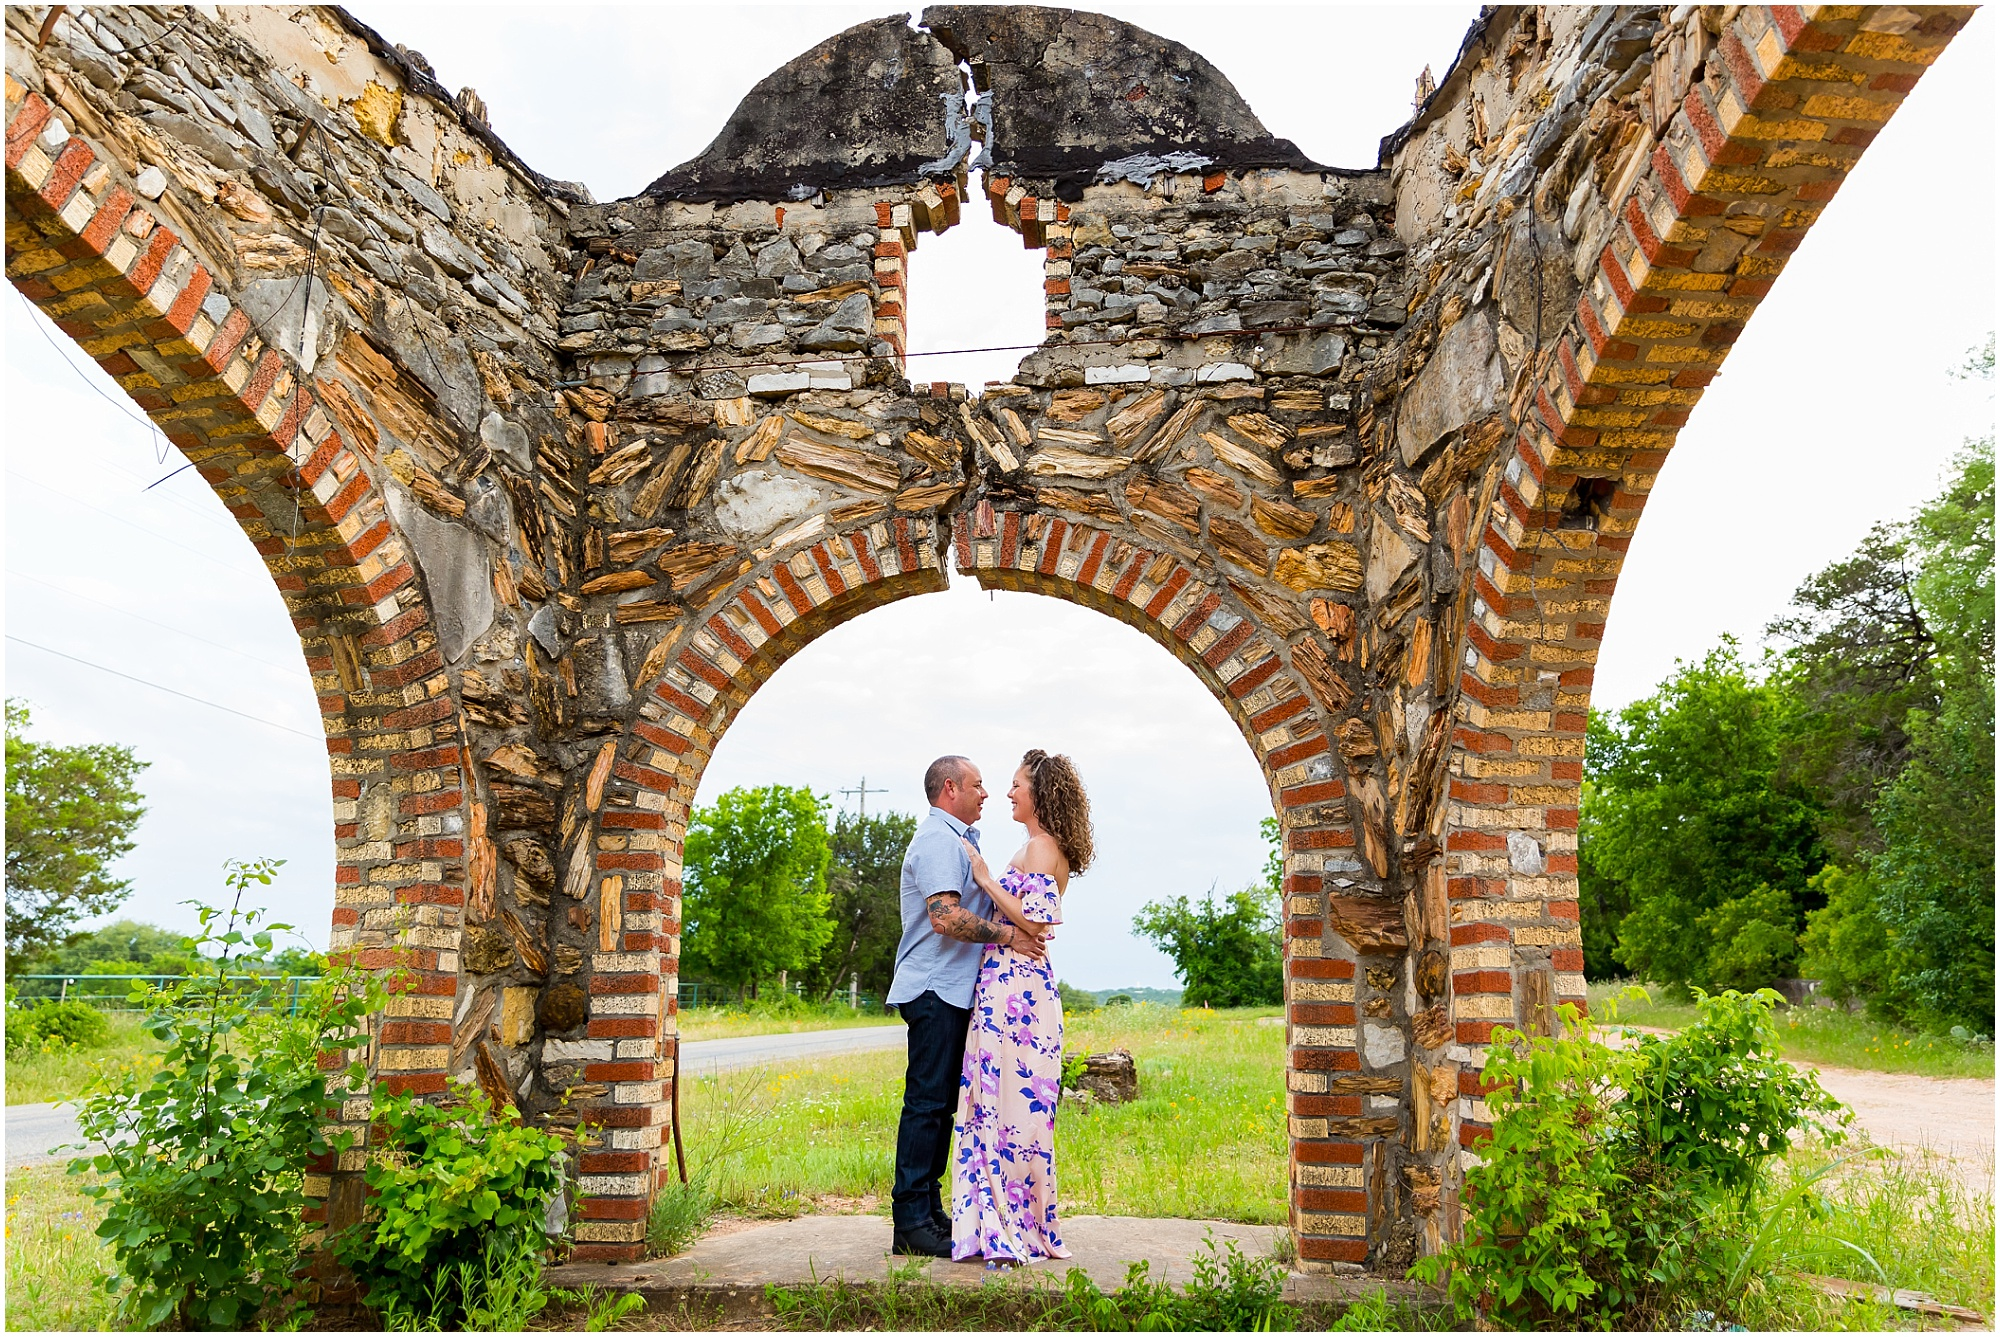 A couple holds one another under an archway of an abandoned petrified rock building in Glen Rose, Texas - Jason & Melaina Photography - www.jasonandmelaina.com